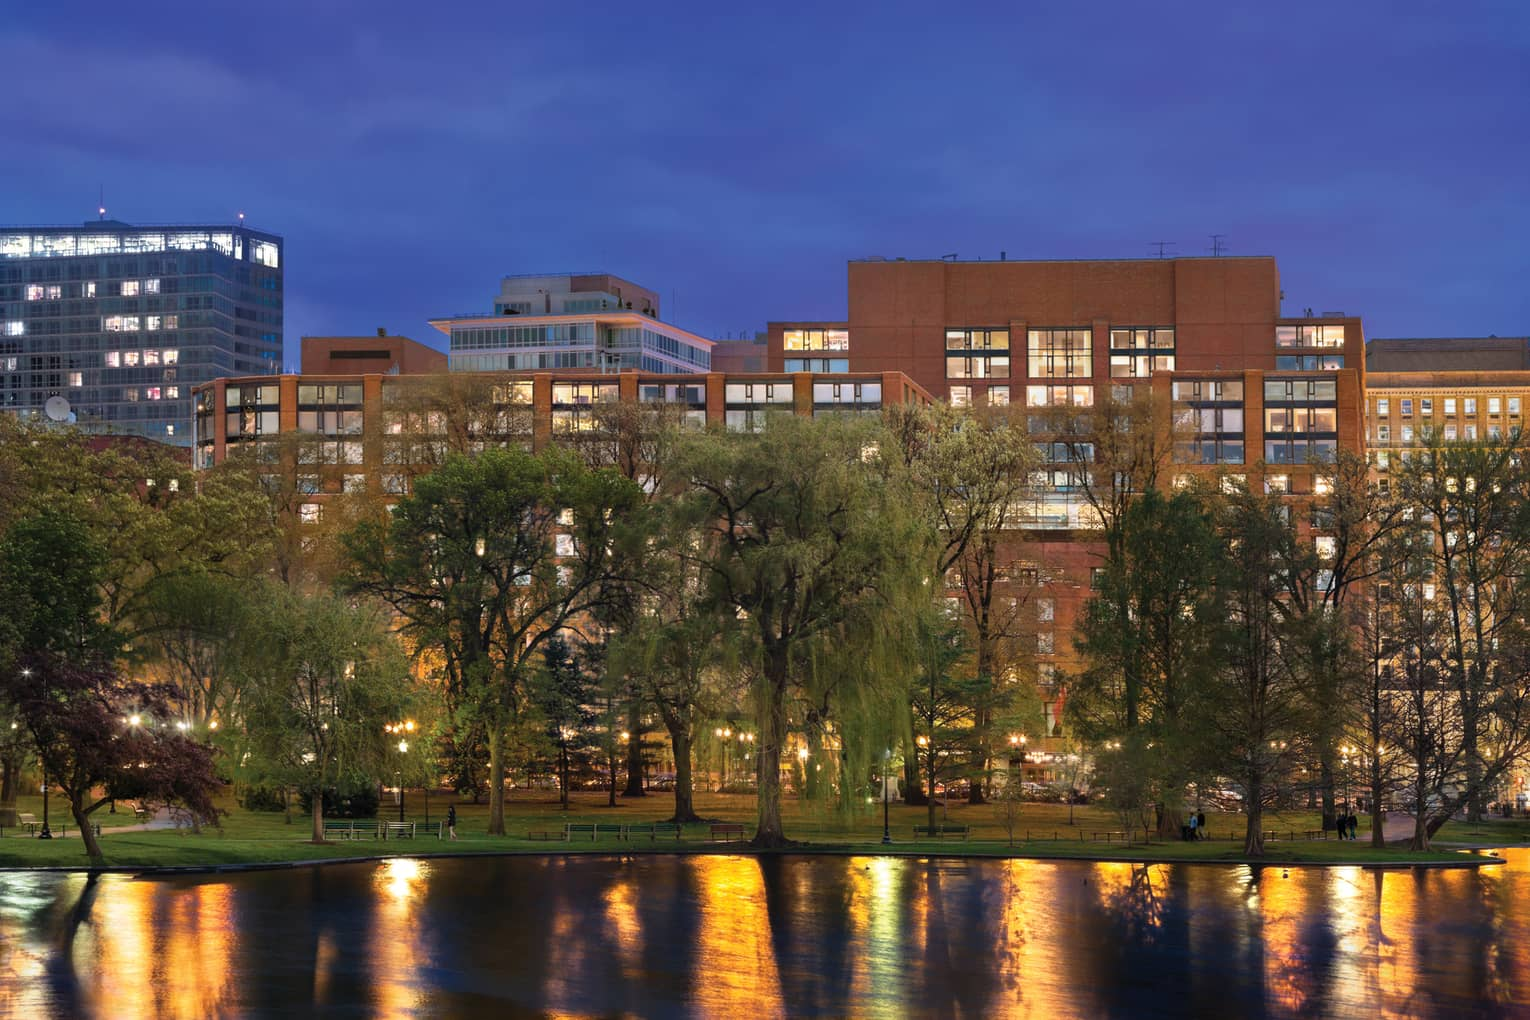 Exterior view of hotel at dusk with tall green trees and pond in Boston Public Garden